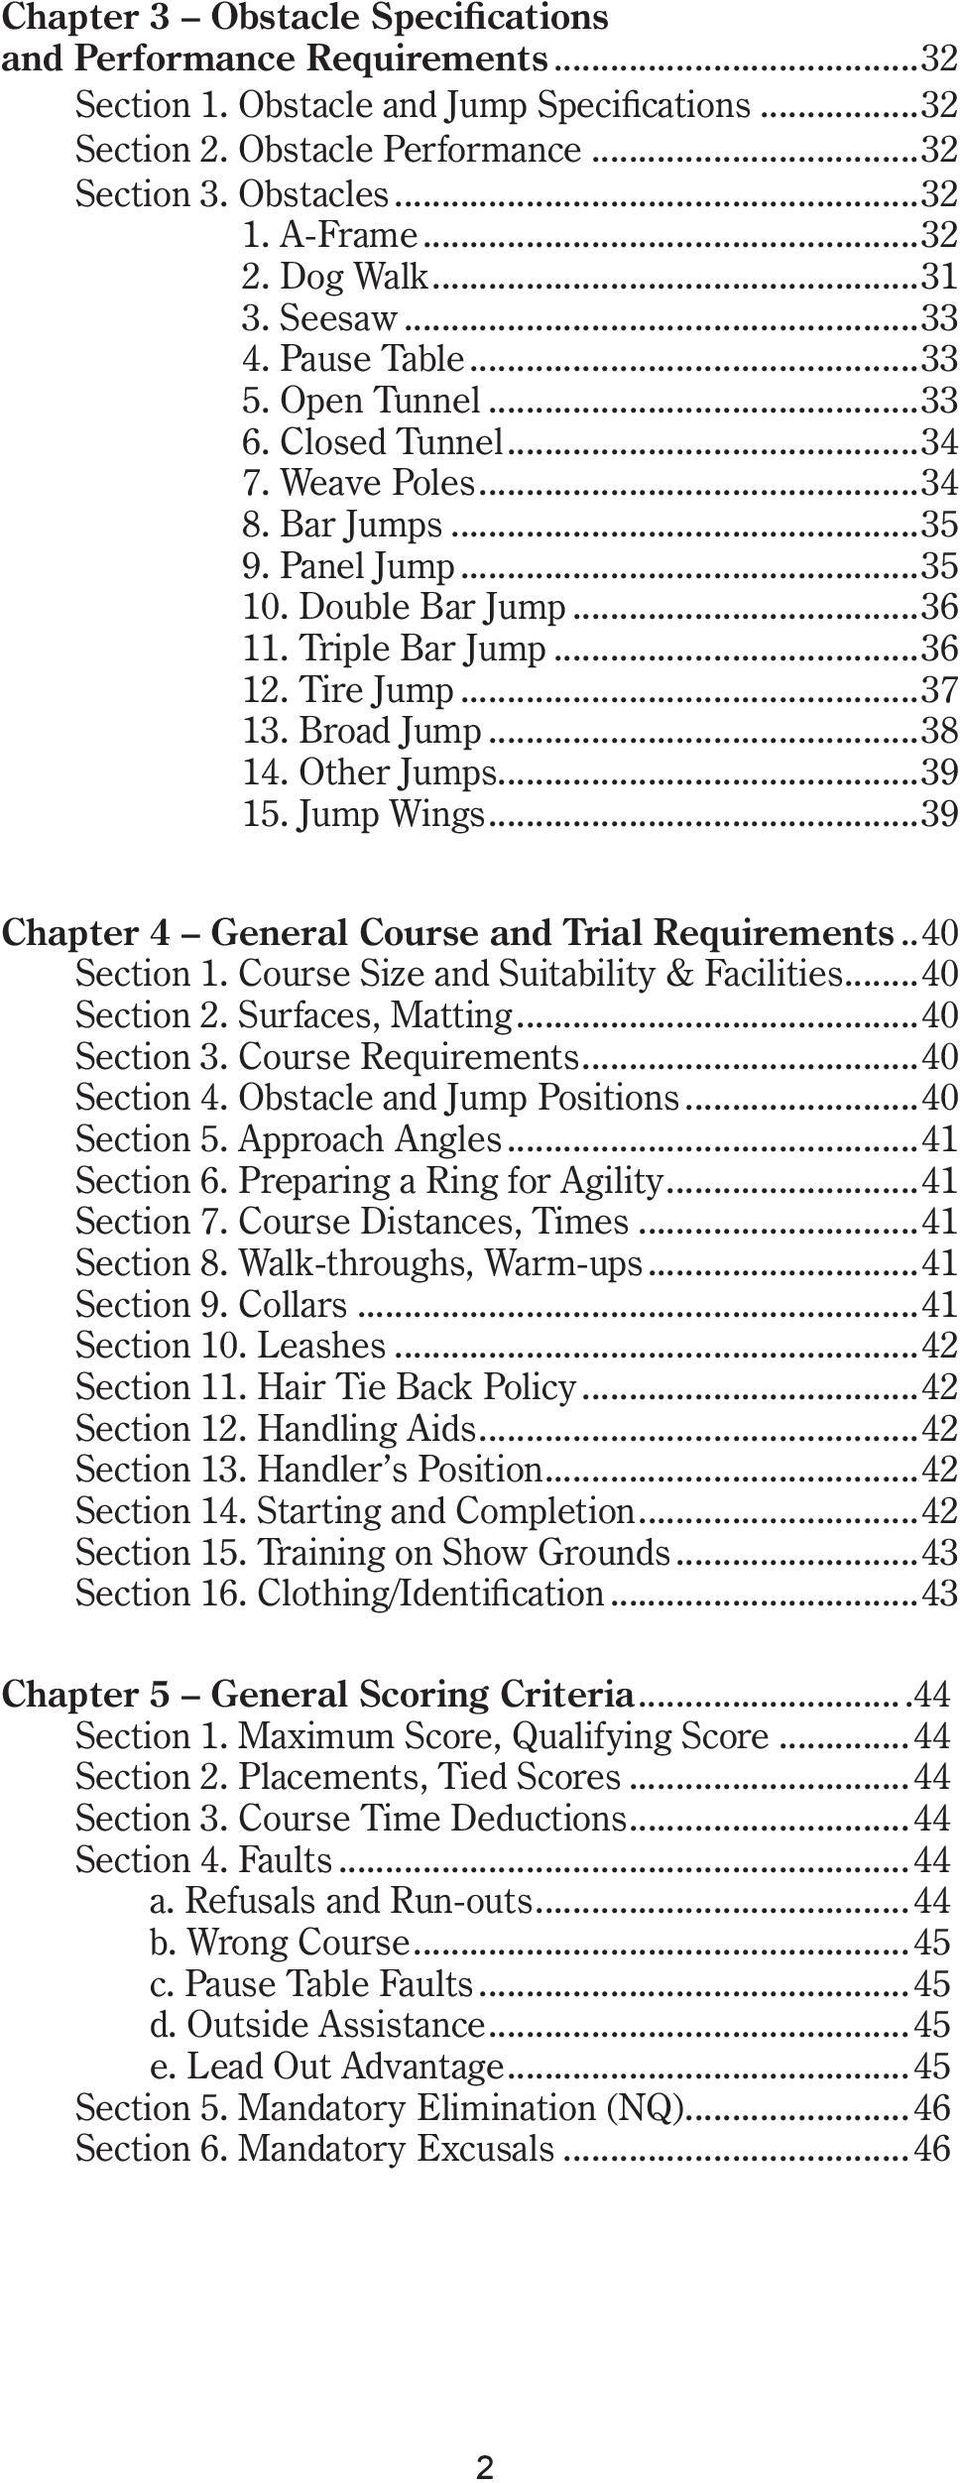 Tire Jump...37 13. Broad Jump...38 14. Other Jumps...39 15. Jump Wings...39 Chapter 4 General Course and Trial Requirements...40 Section 1. Course Size and Suitability & Facilities...40 Section 2.